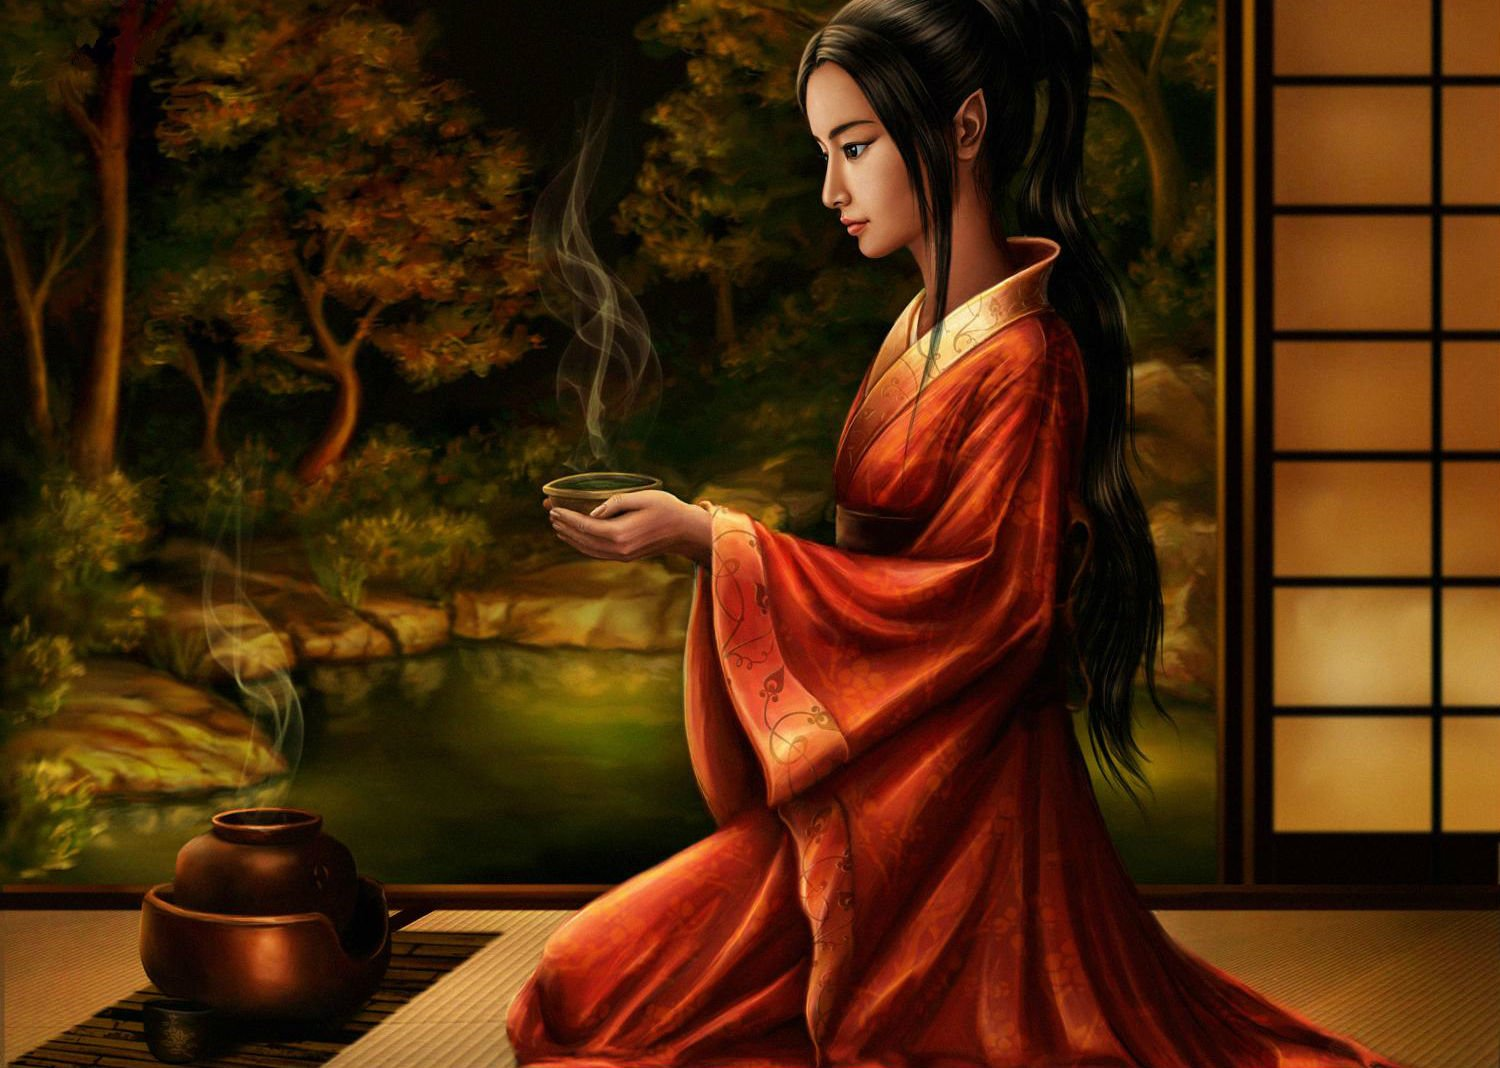 Artistic asians images 83